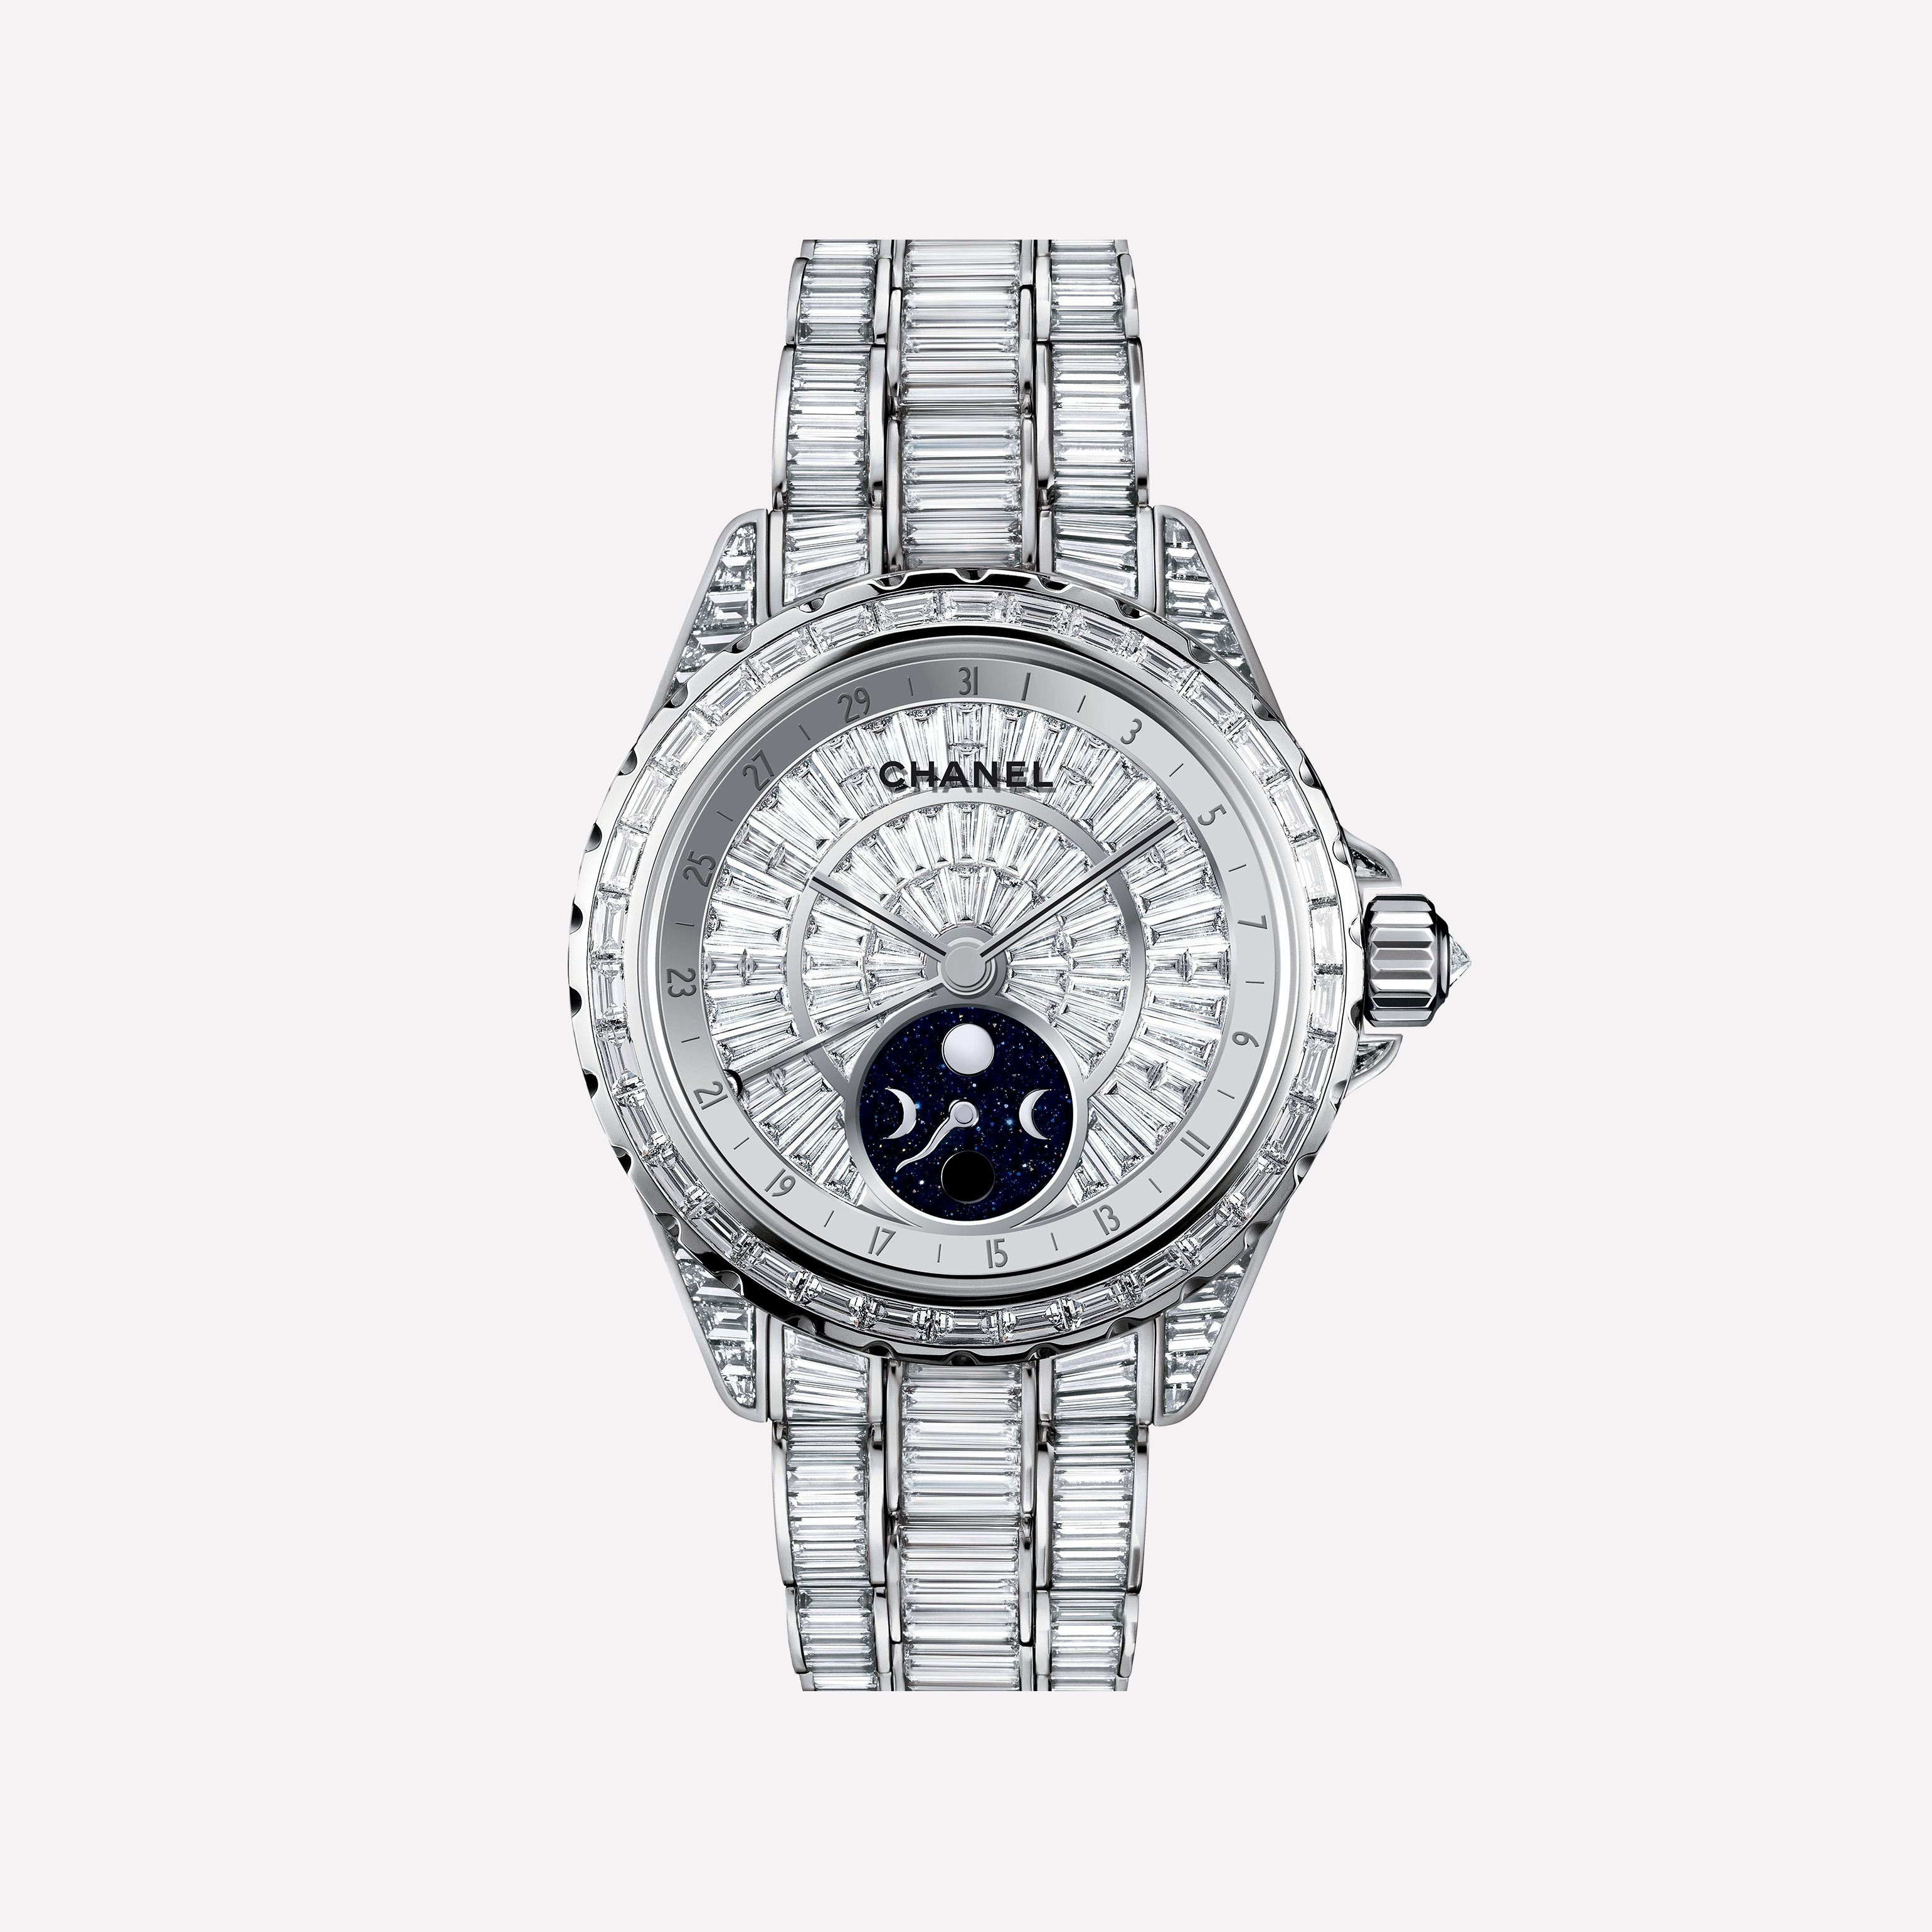 J12 high jewelry watch h3426 chanel for Jewelry watches